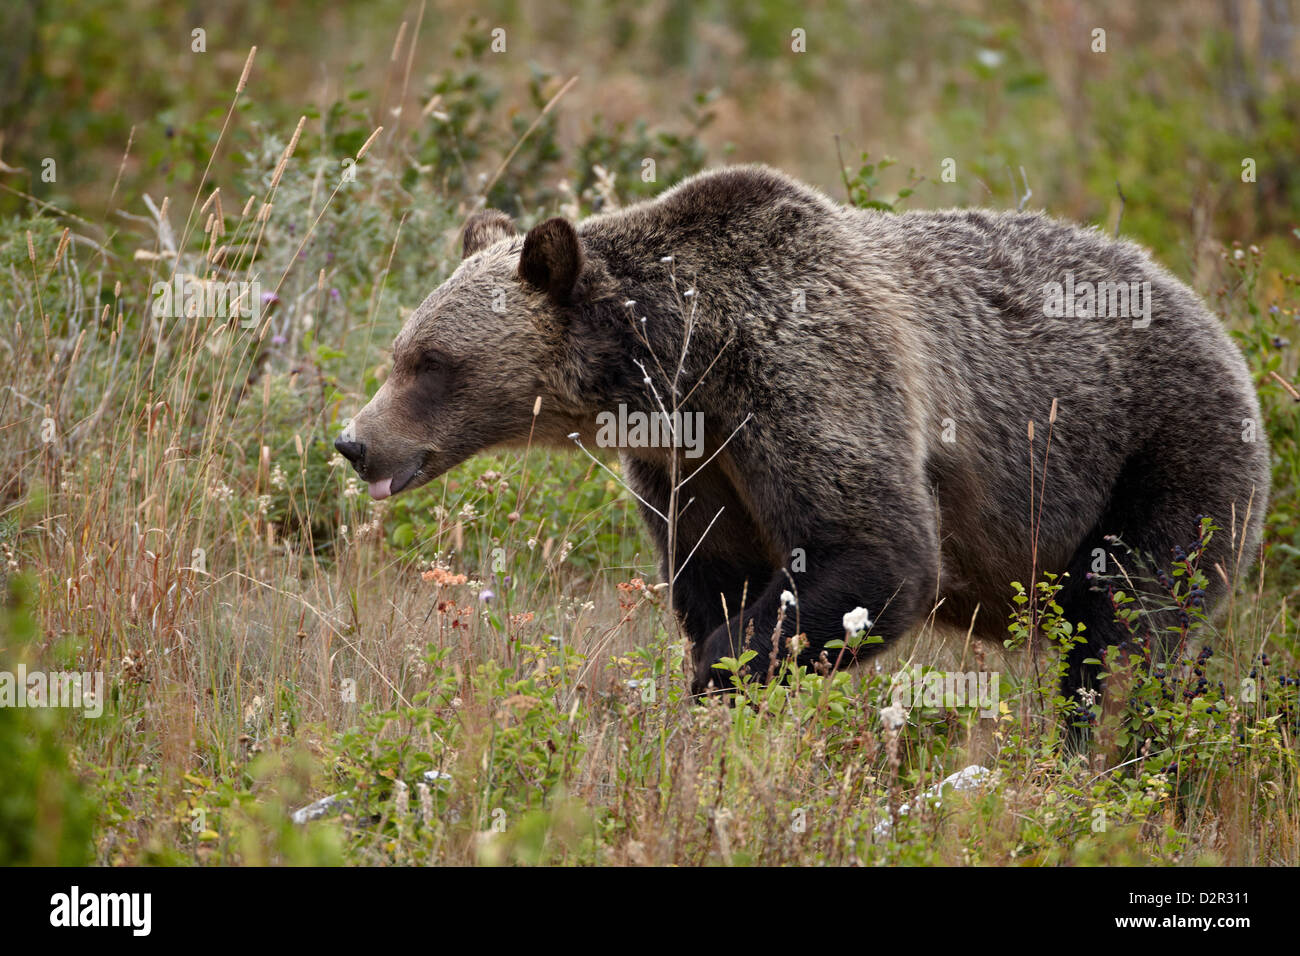 Grizzly bear (Ursus arctos horribilis) with its tongue out, Glacier National Park, Montana, USA - Stock Image